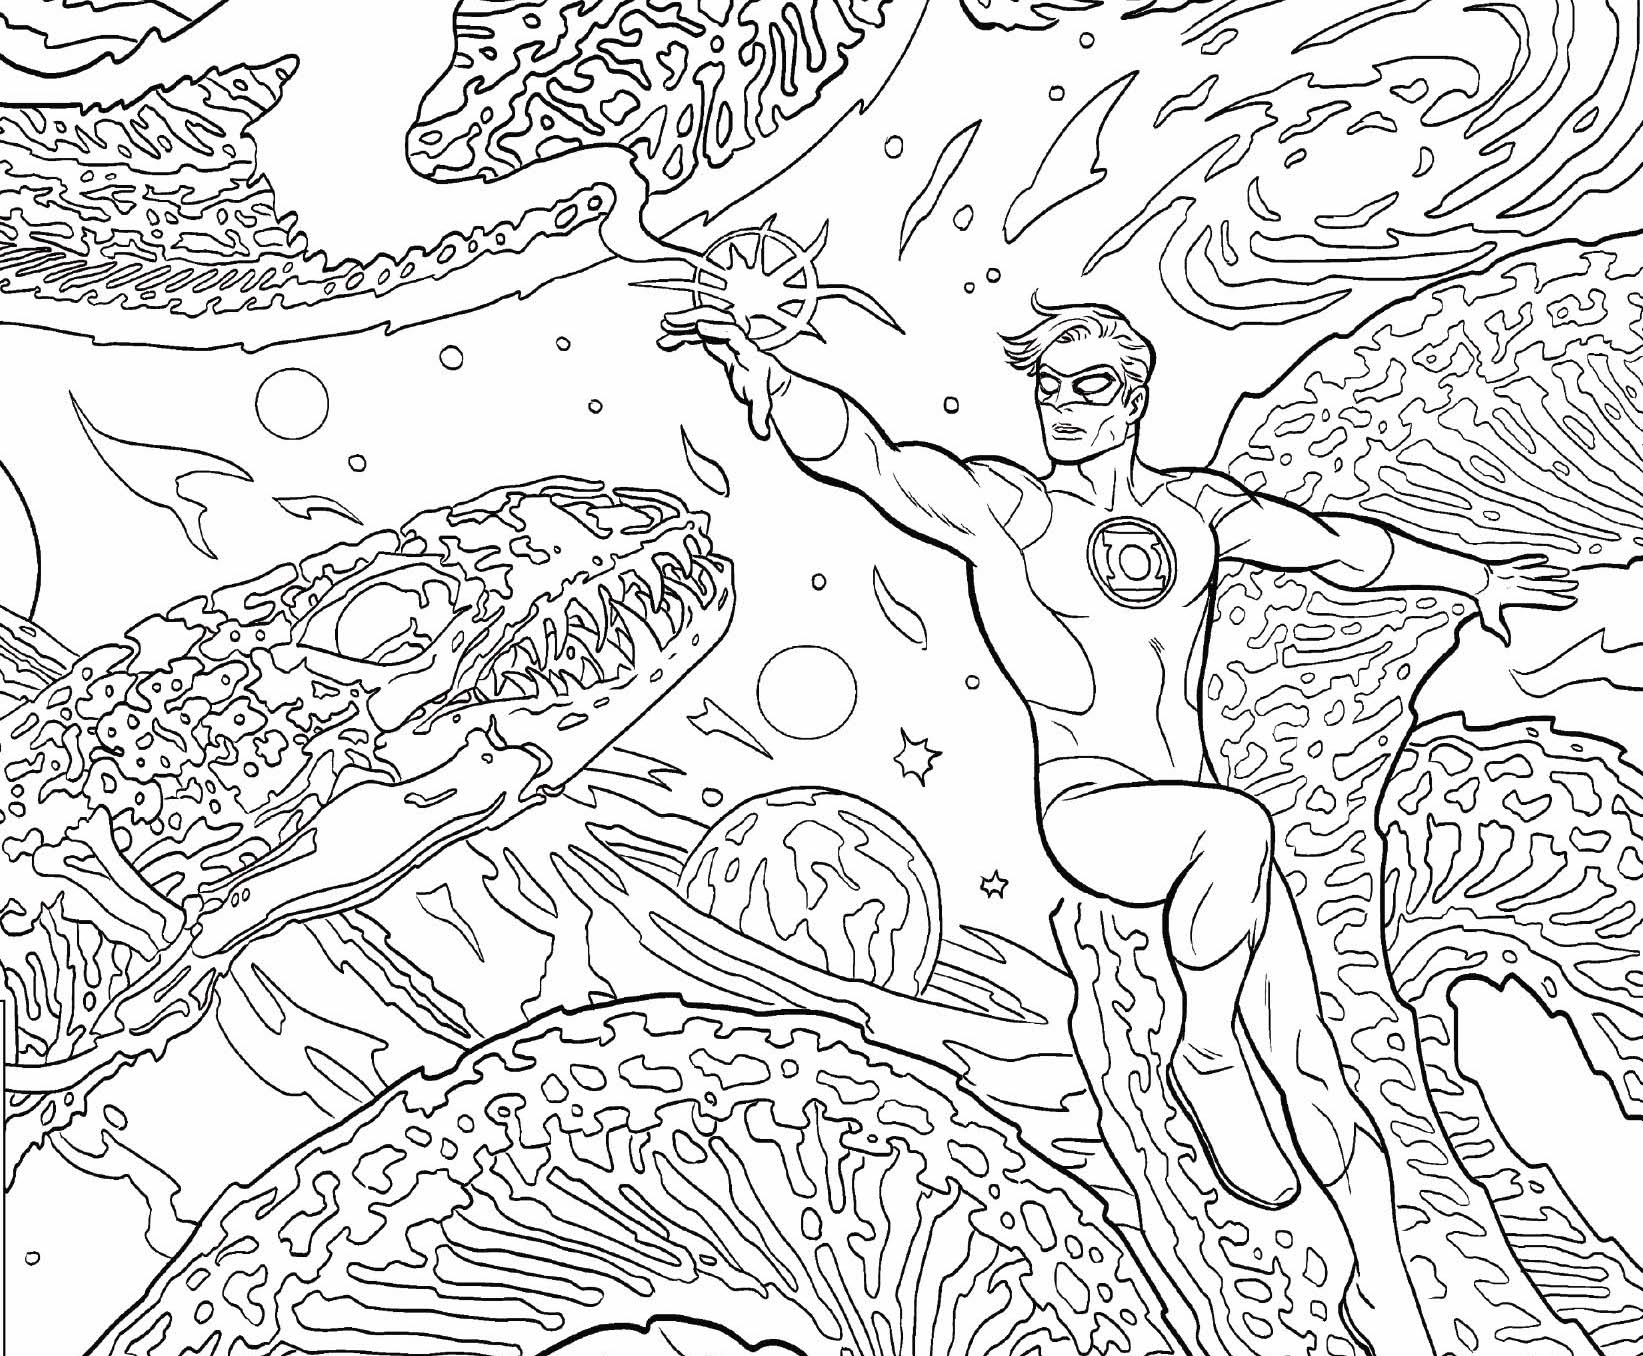 DC Preview: Adult Coloring Book Covers